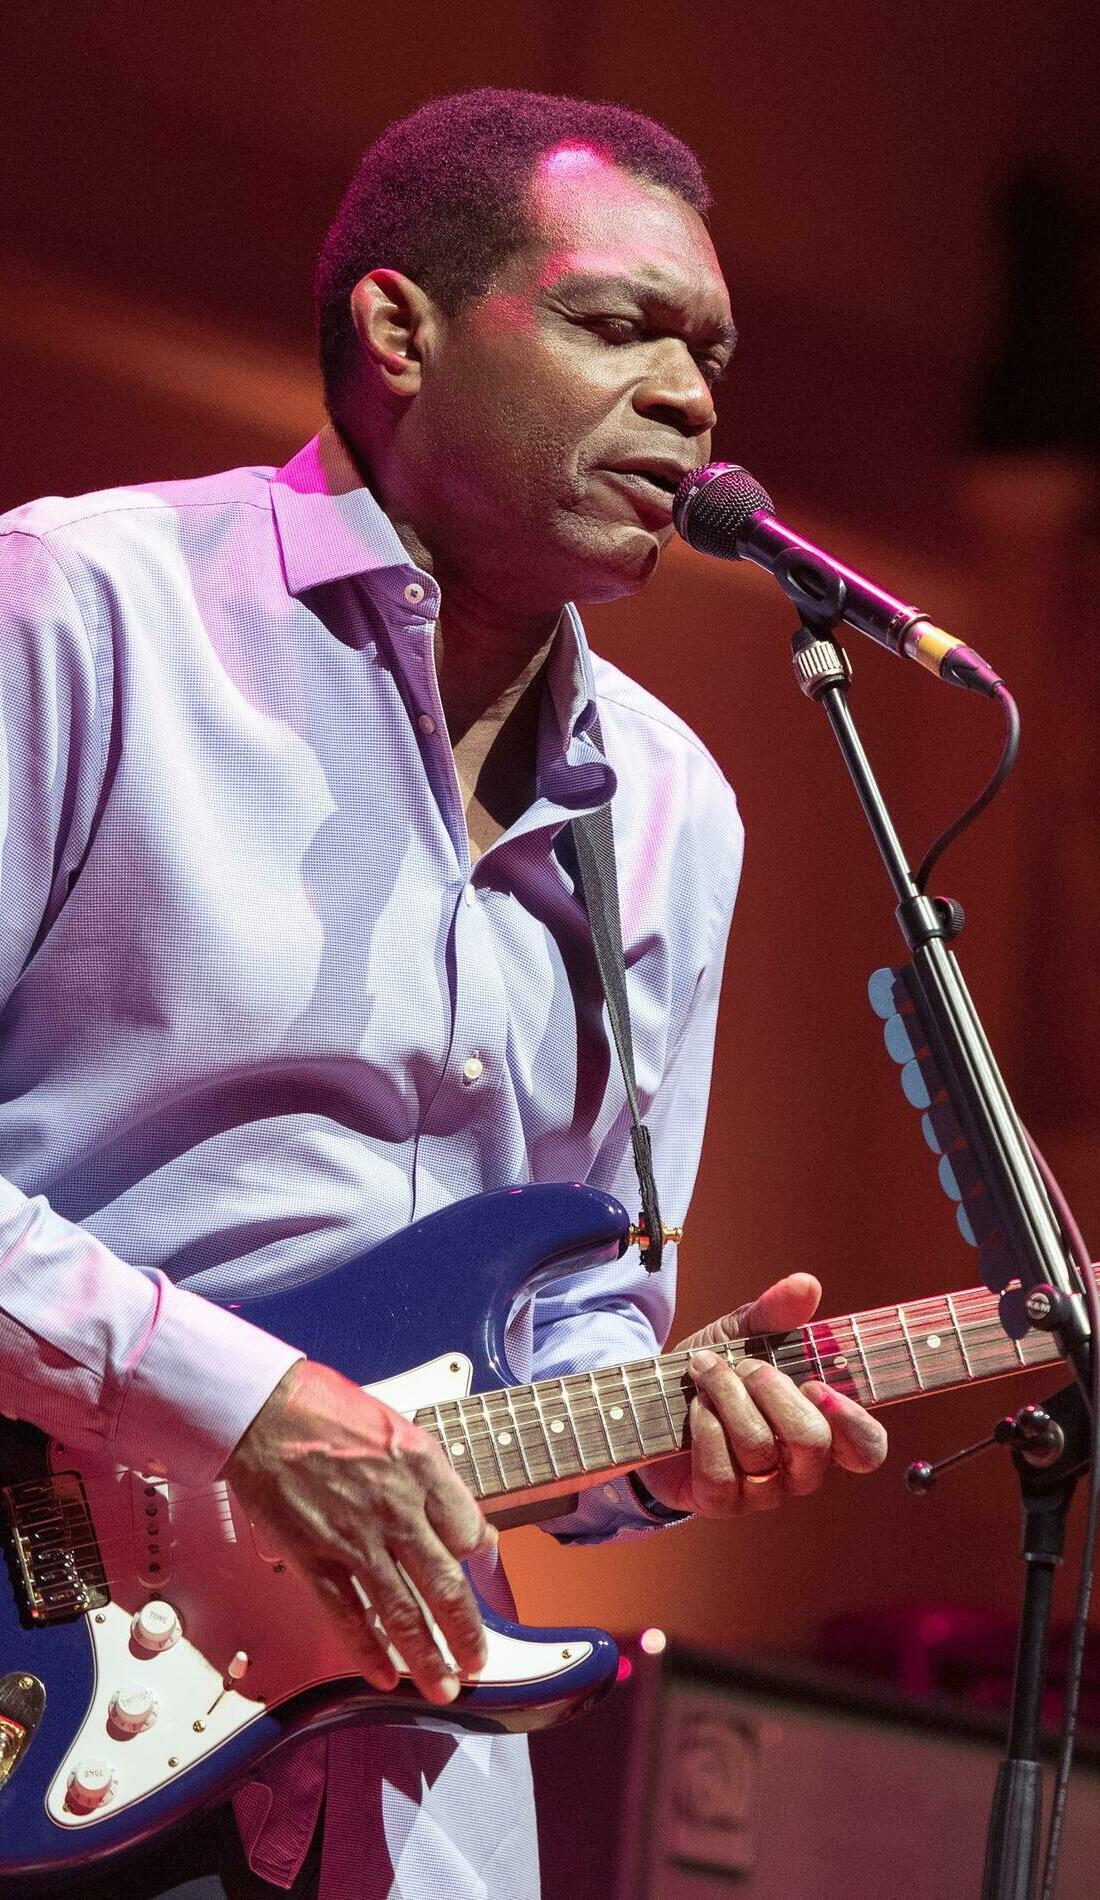 A Robert Cray live event